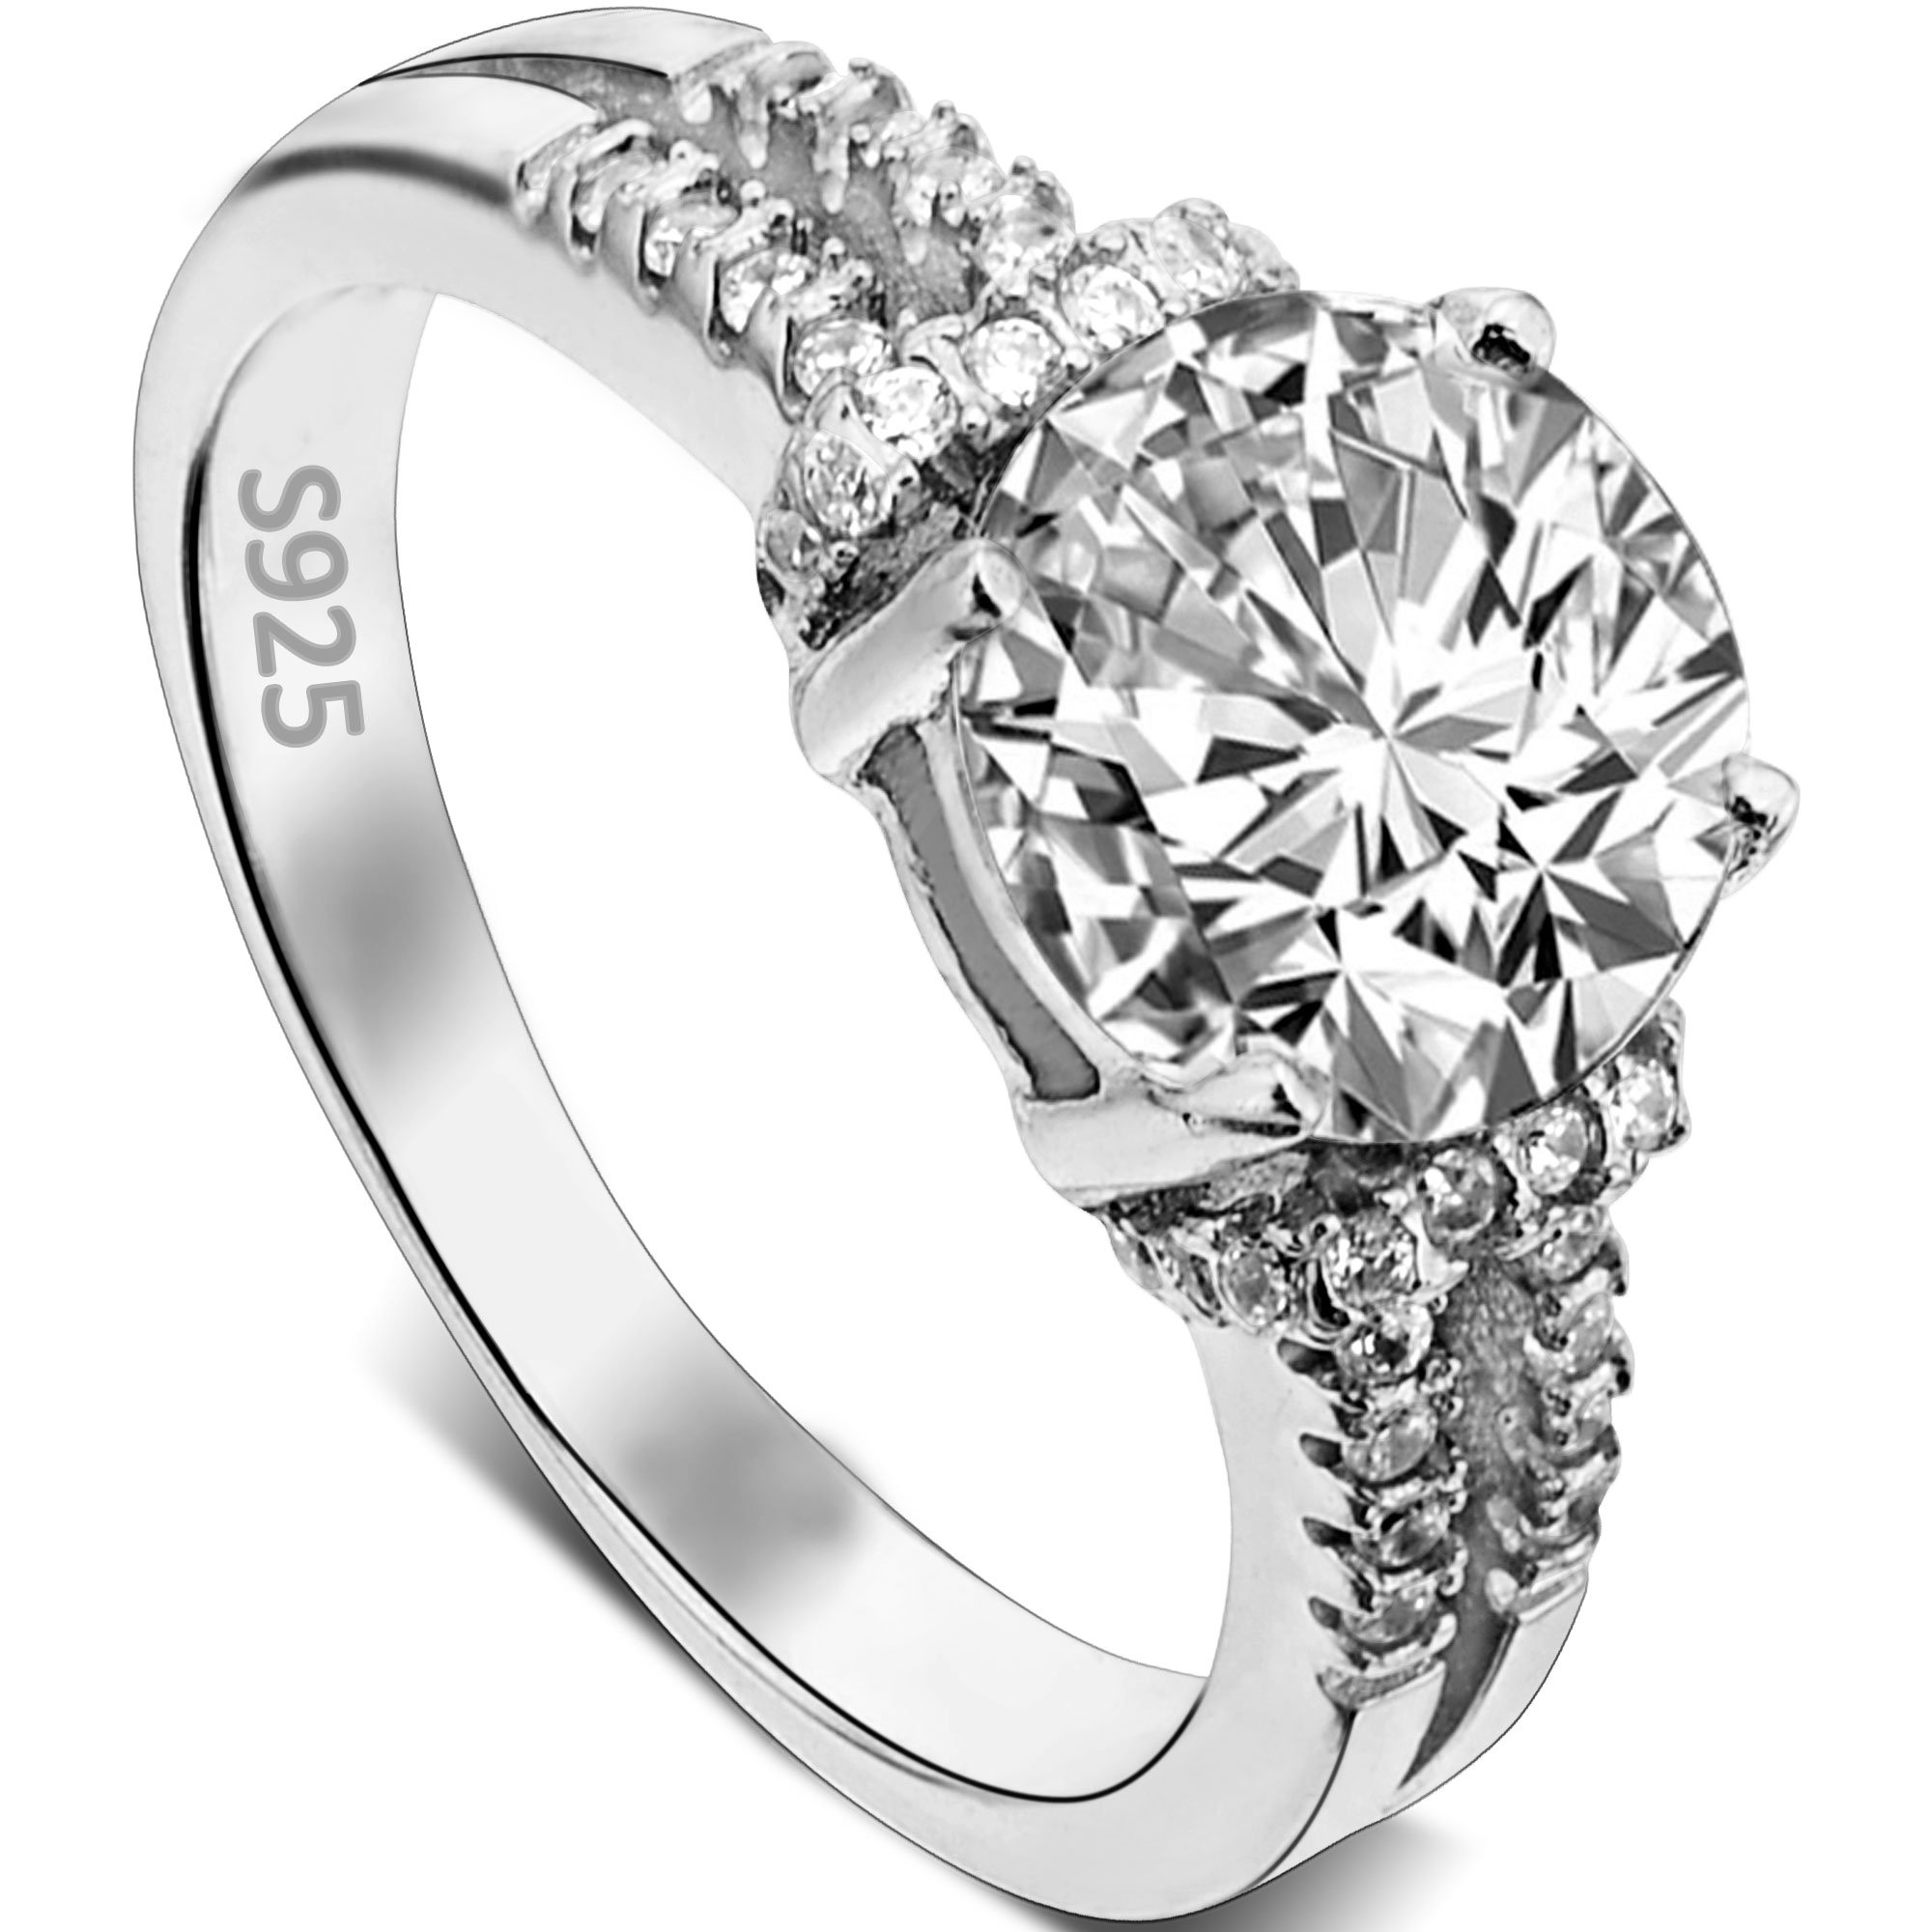 EVER FAITH 925 Sterling Silver 4 Claw Setting Round .79ct CZ Engagement Ring Clear - Size 7